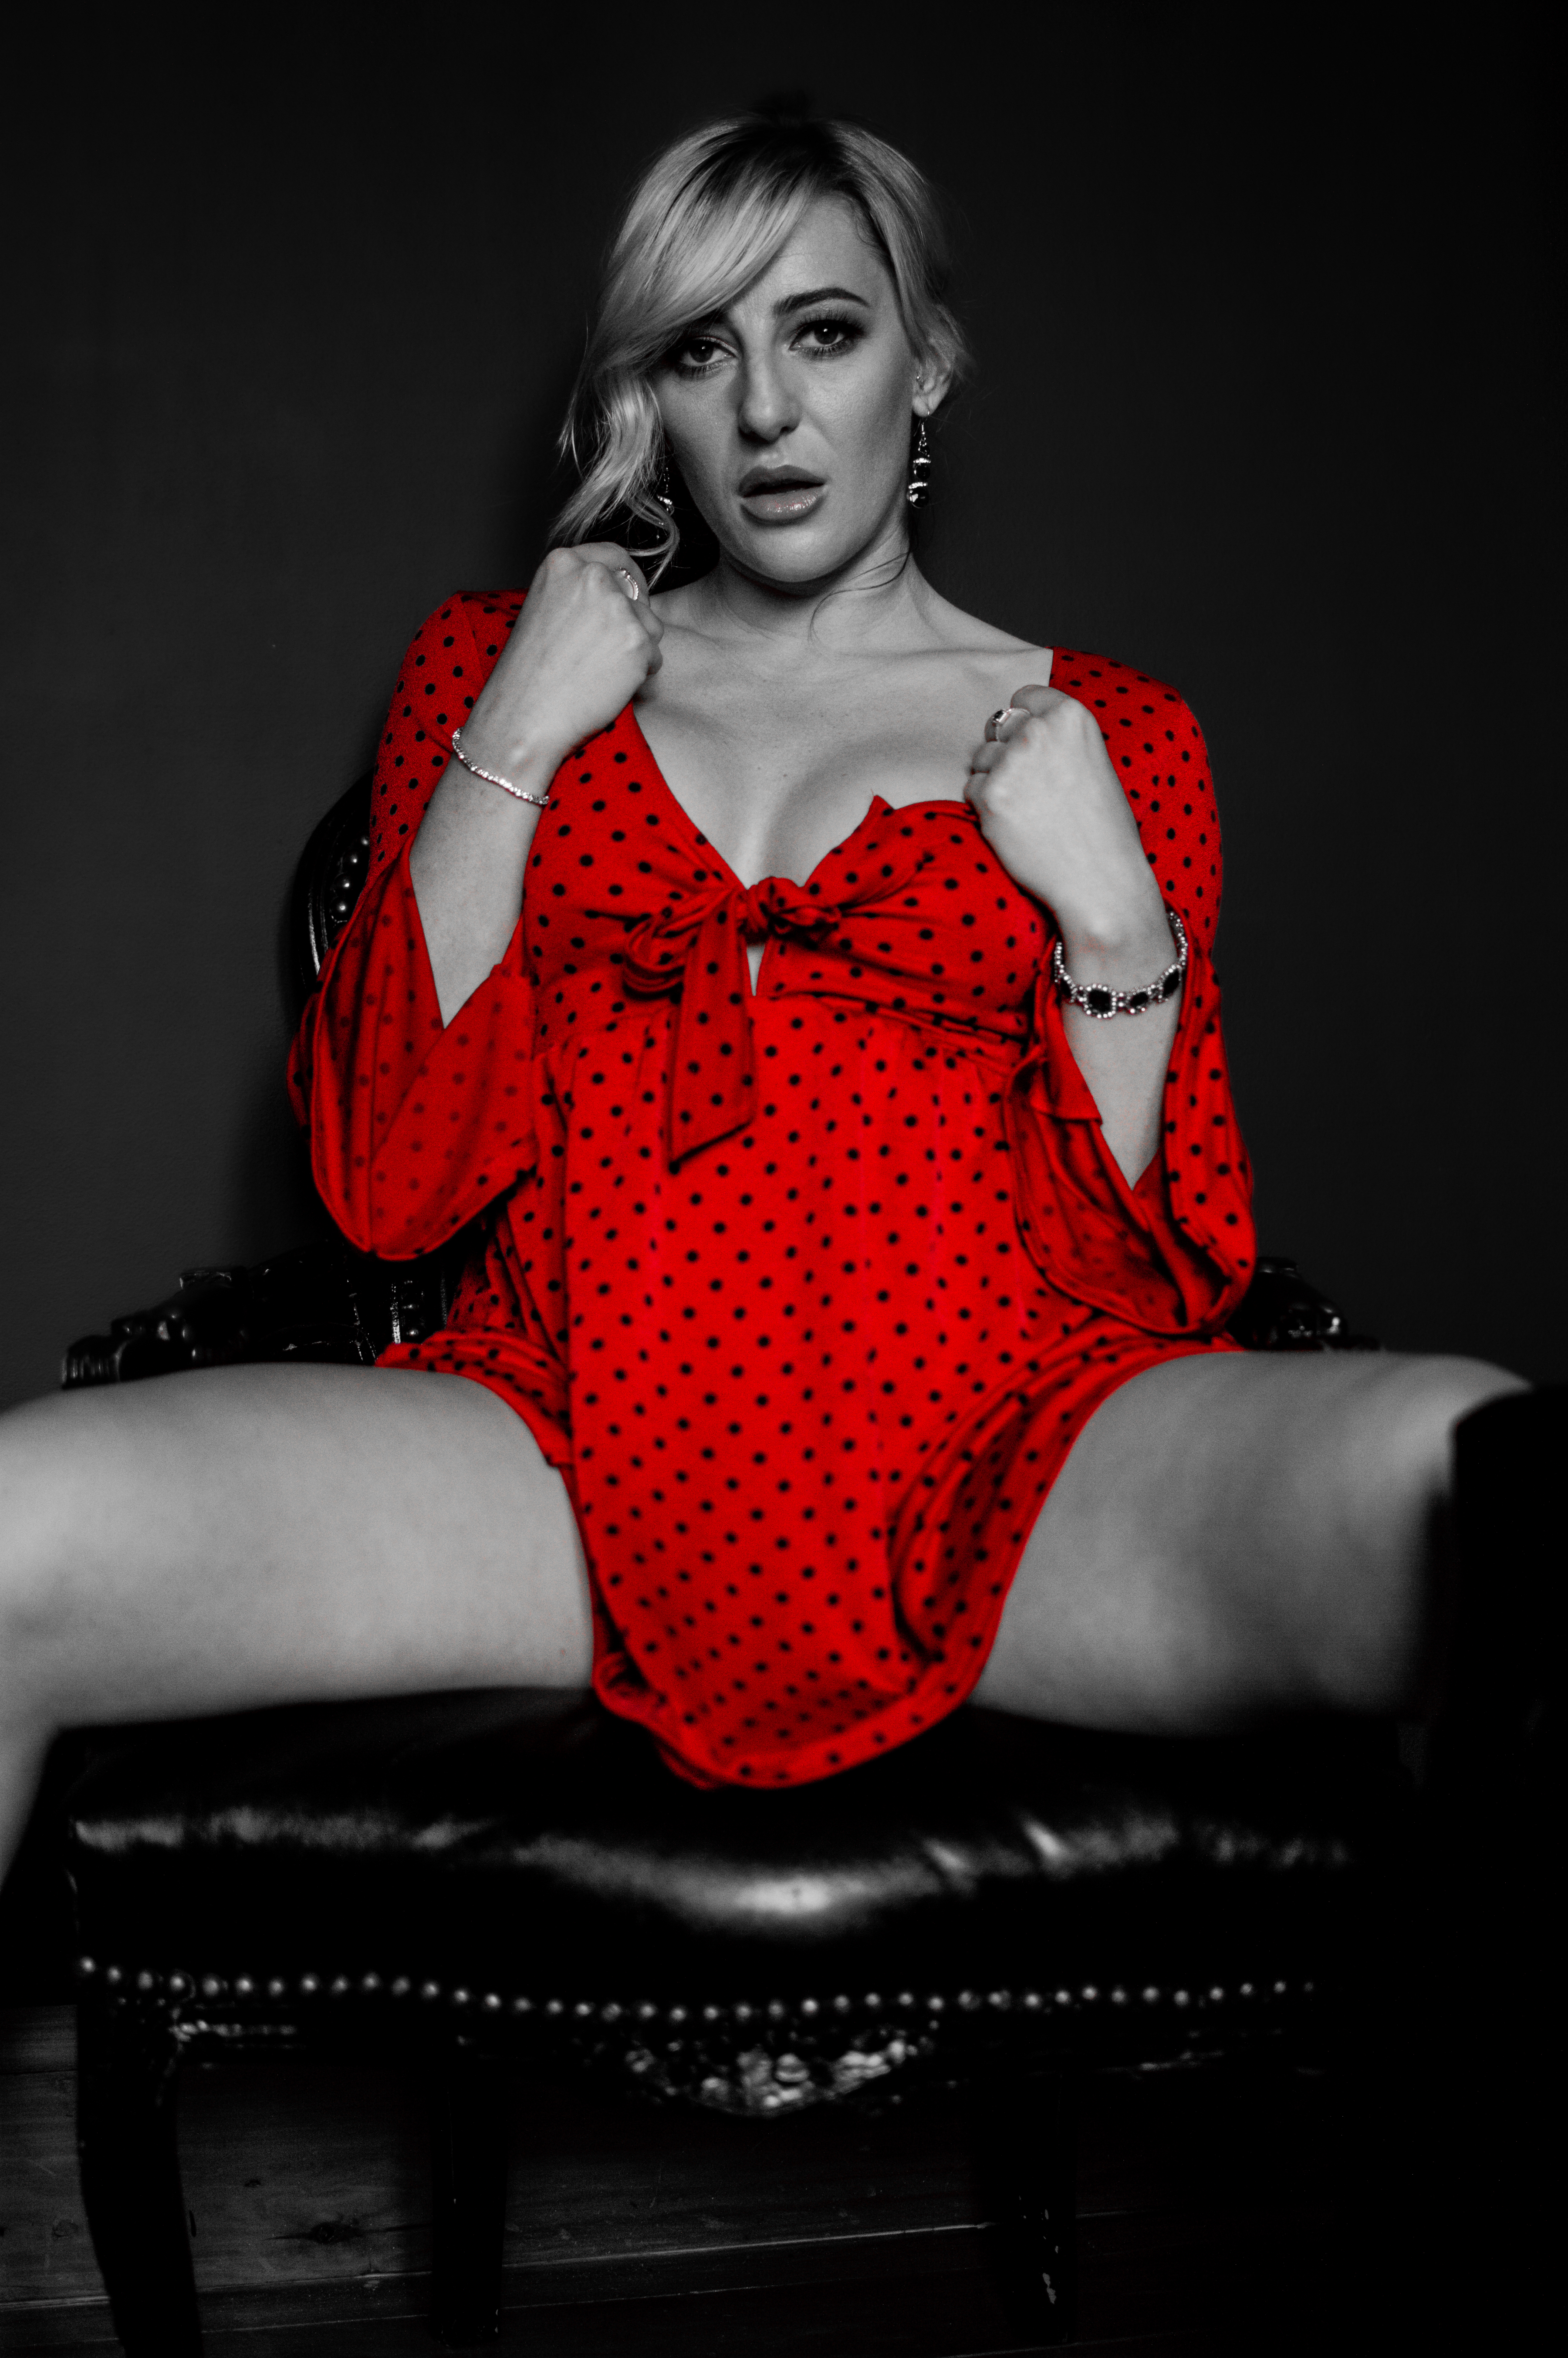 Red and spotty